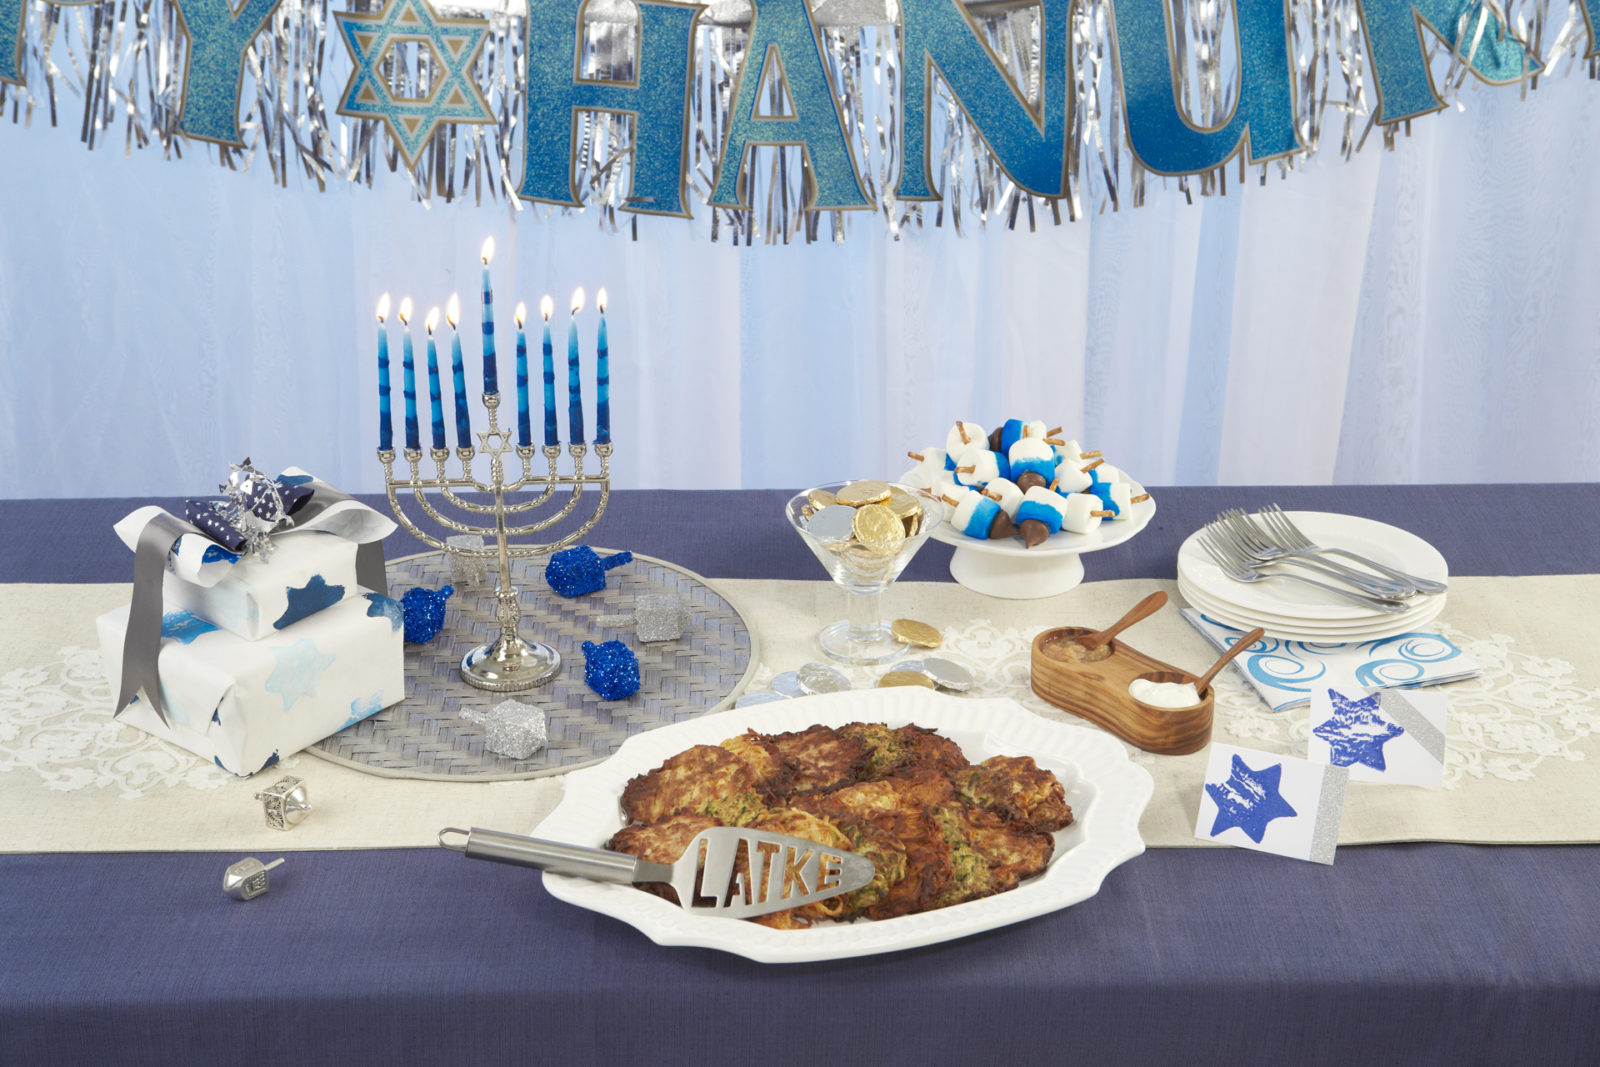 What is the story of hanukkah breaking matzo many of us are more familiar with the symbols of the hanukkah holiday the menorah the dreidel the latkes than the story behind the holiday itself buycottarizona Images